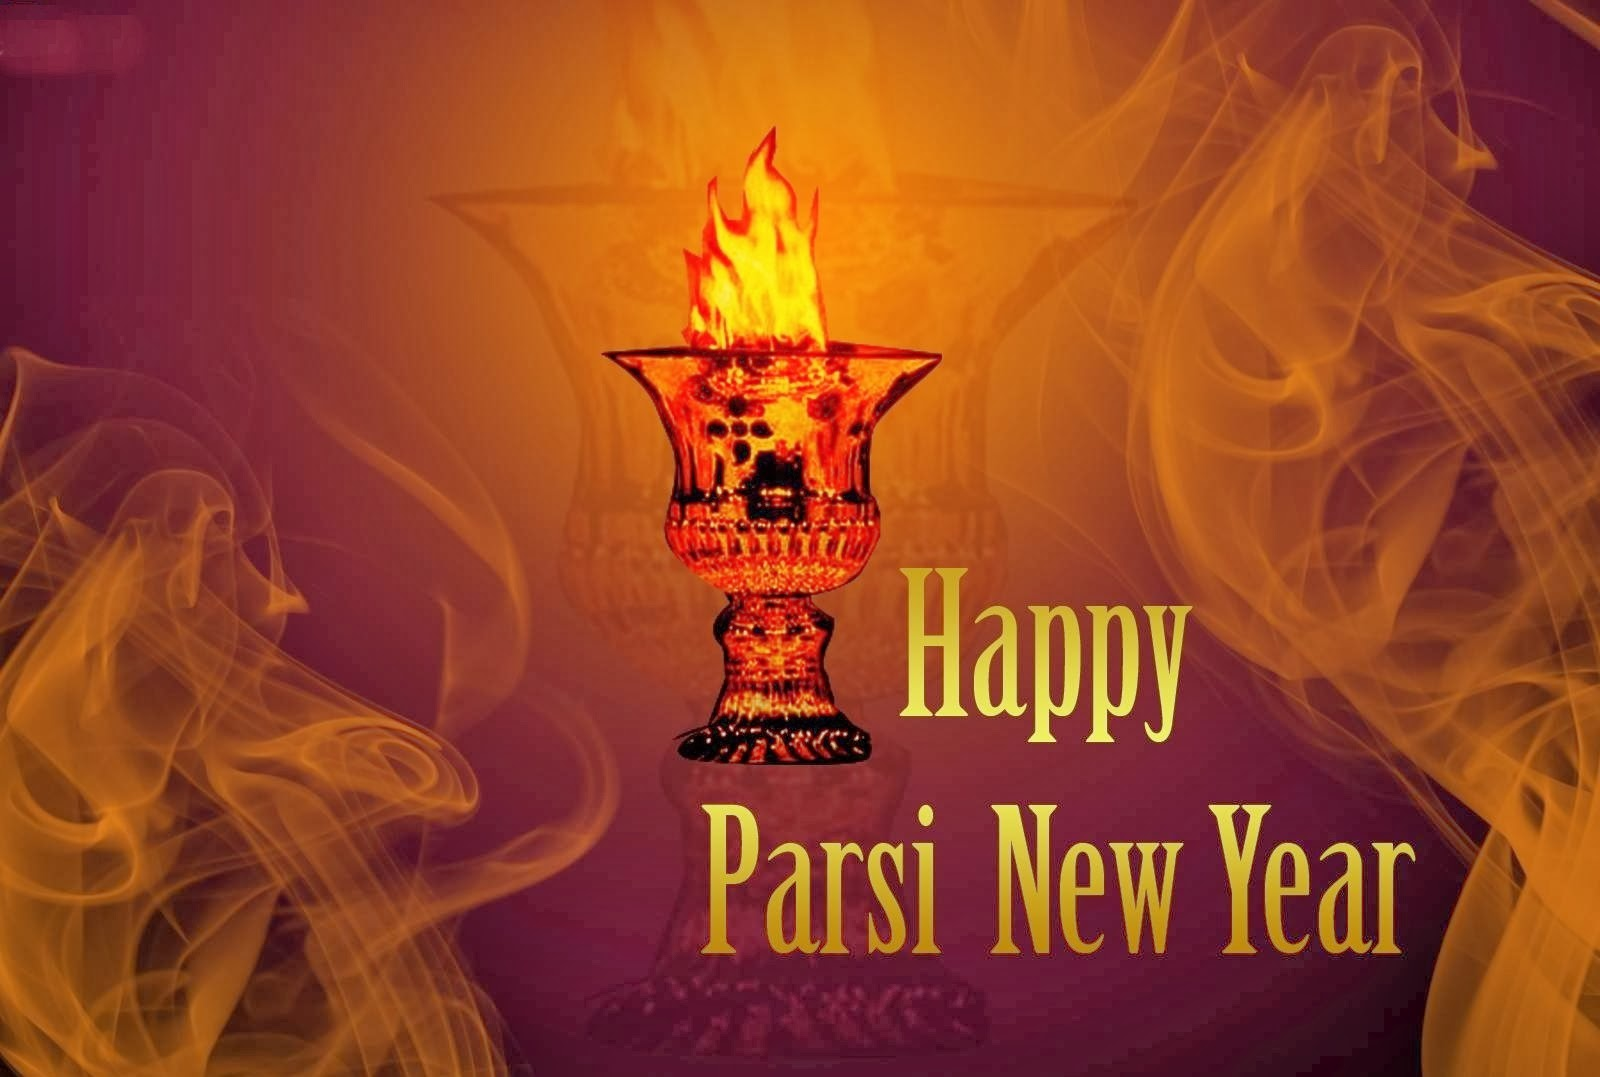 Happy-Parsi-New-Year-2013